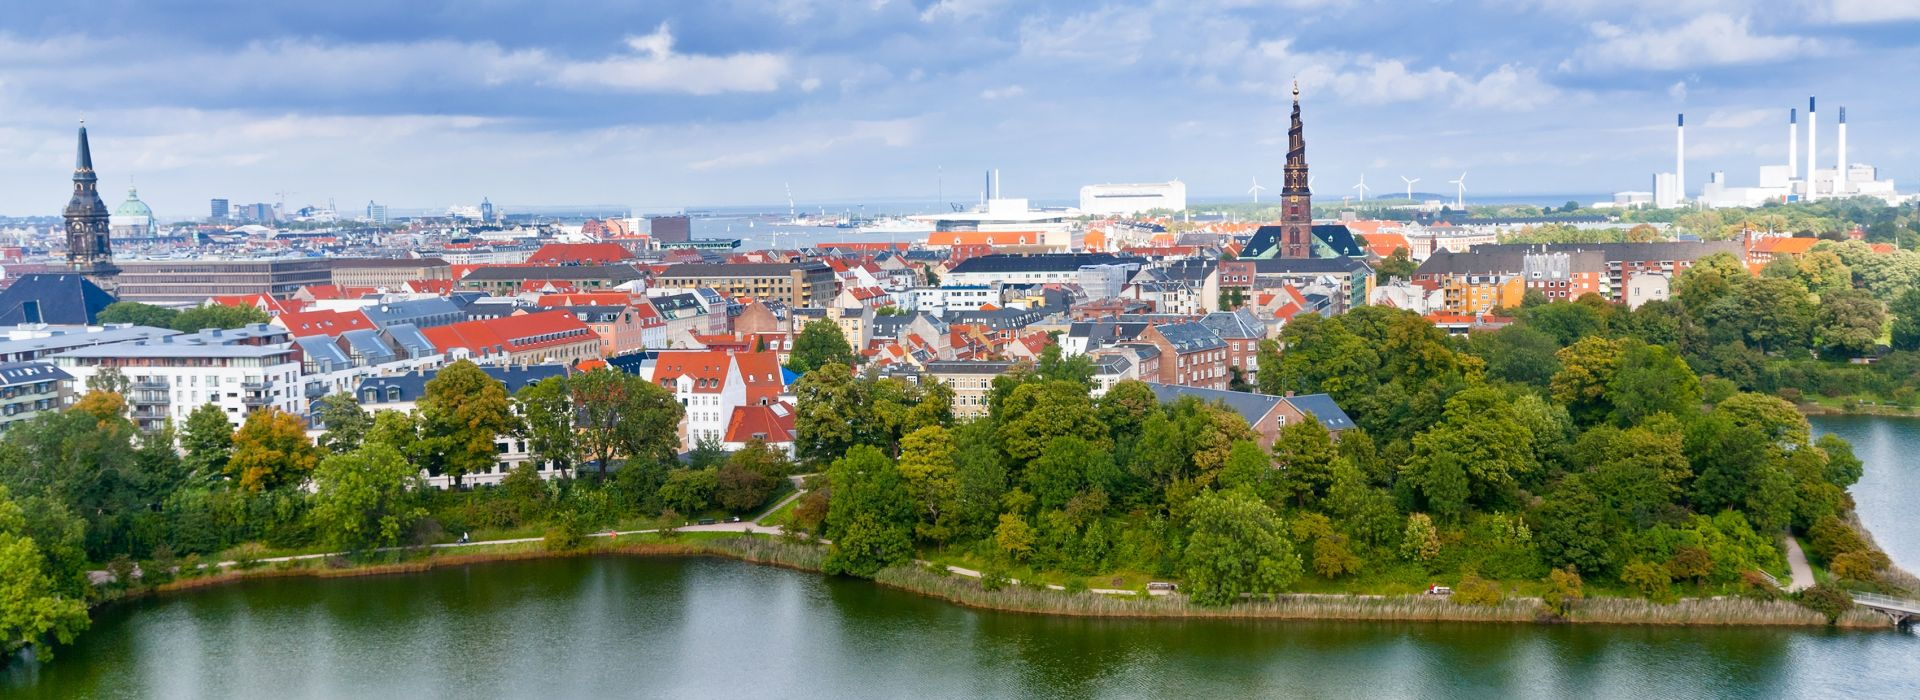 Travelling Denmark – Tours and Trips in Denmark